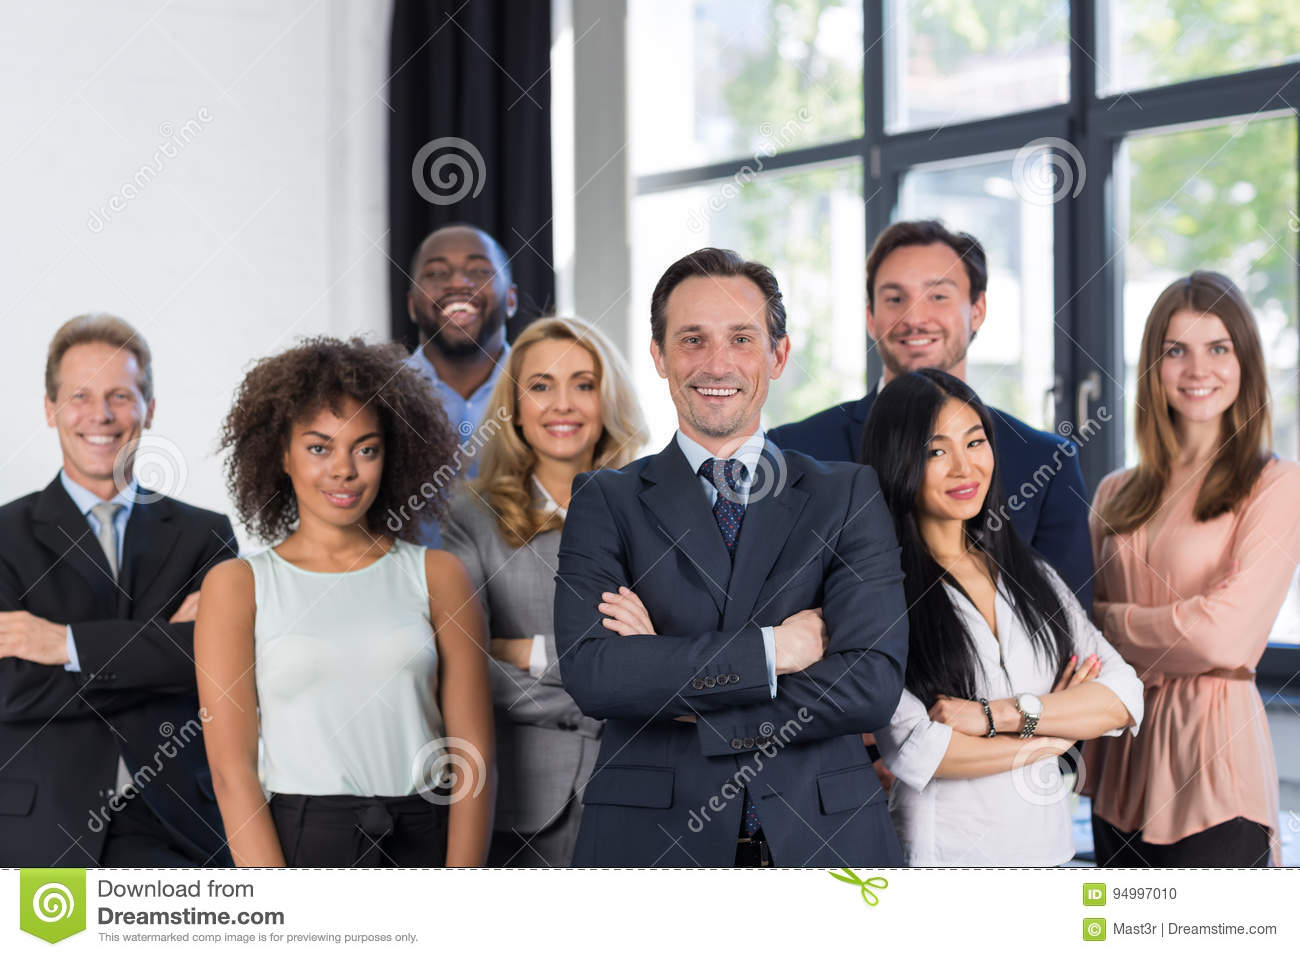 Boss And Business People Group With Mature Leader On Foreground In Office, Leadership Concept, Successful Mix Race Team